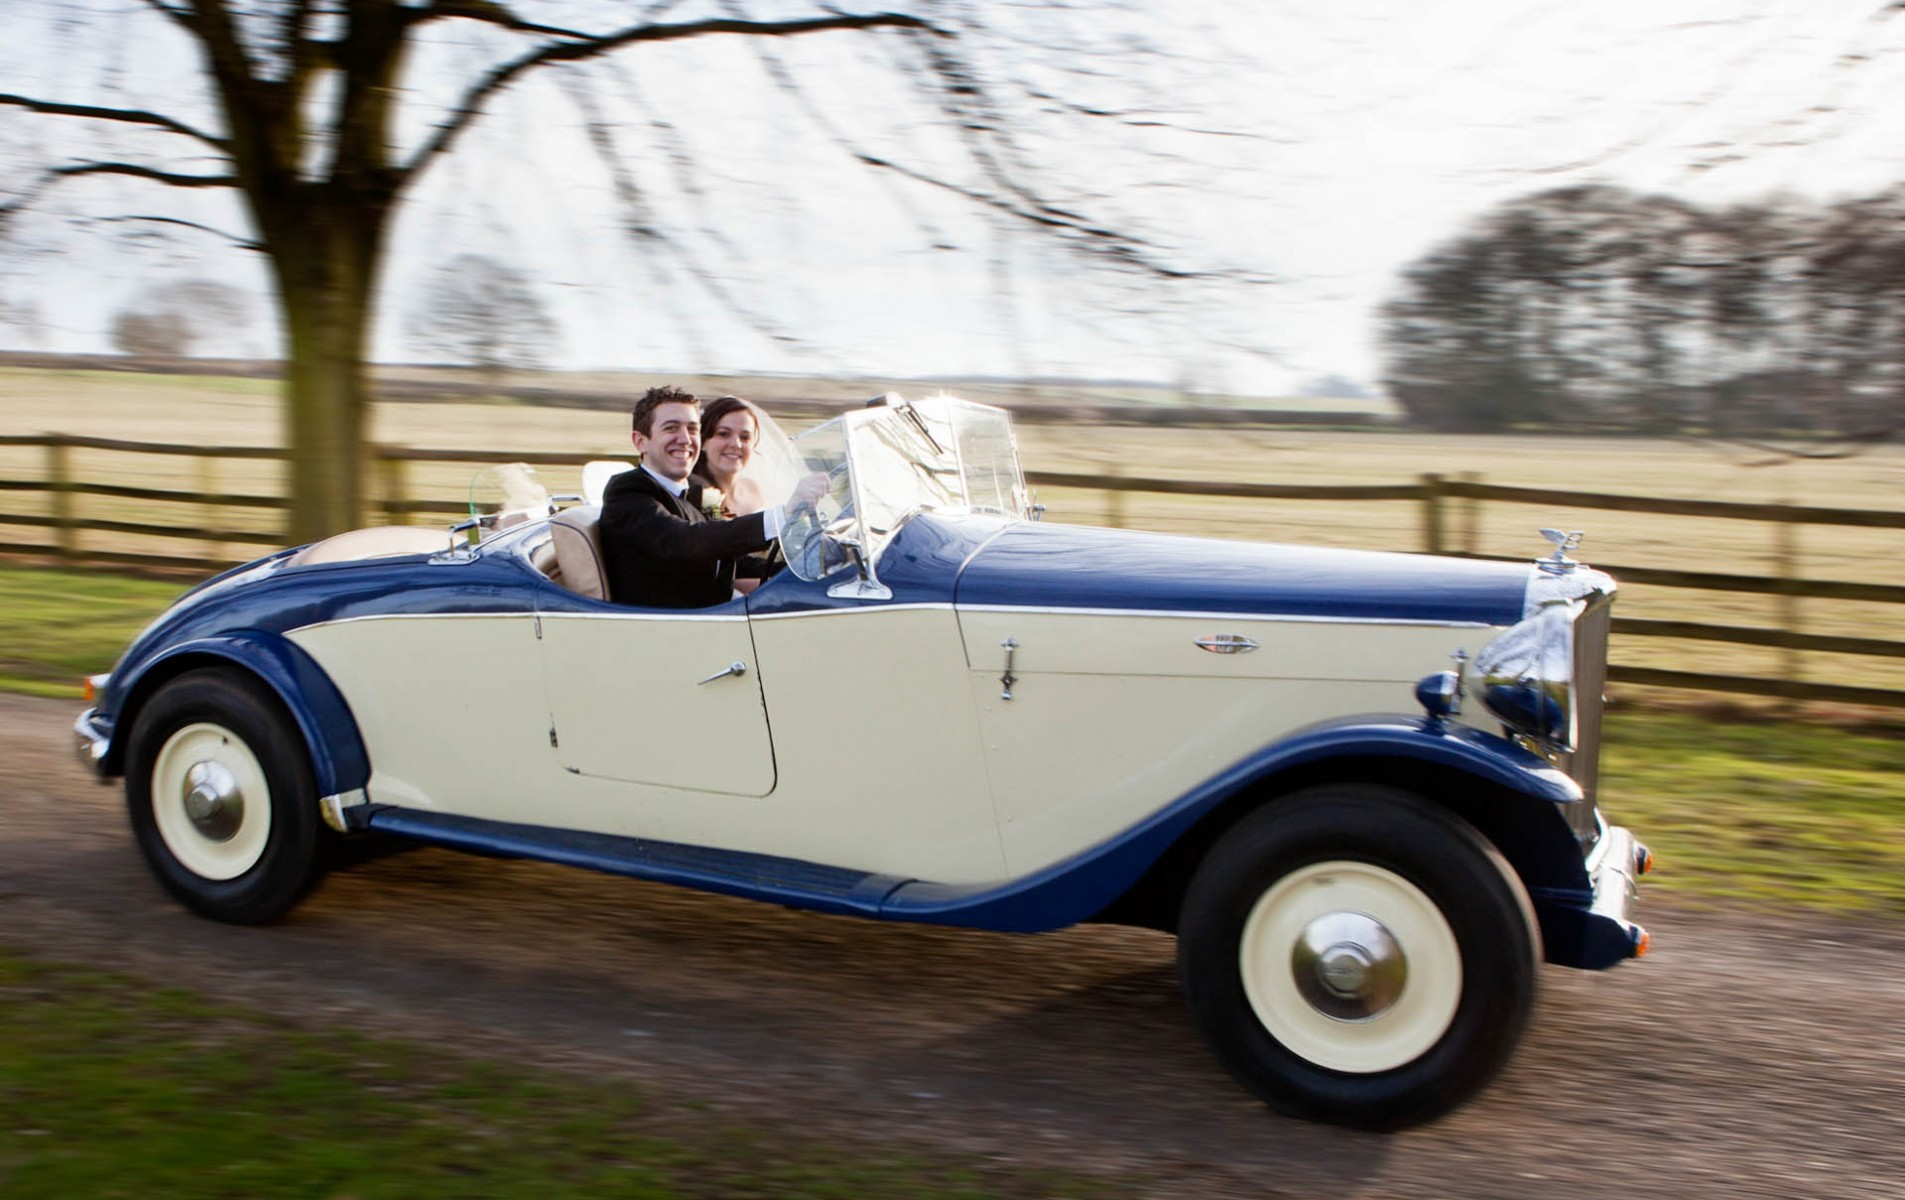 Notley Abbey Wedding Photographer - Sarah and Chris